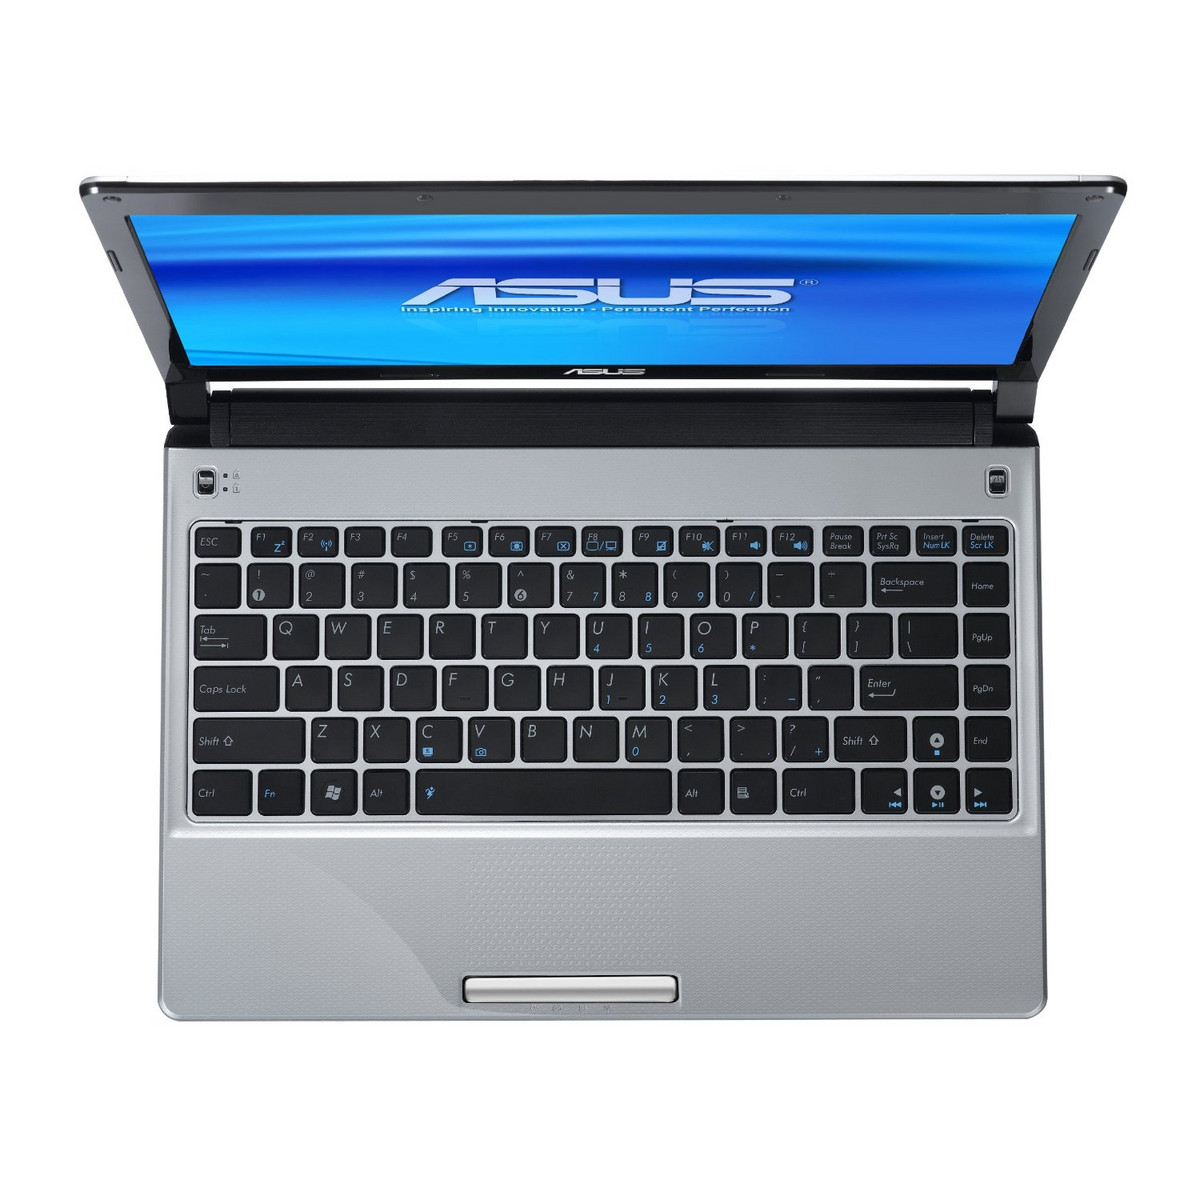 ASUS UL30JT NVIDIA GRAPHICS DRIVERS DOWNLOAD FREE